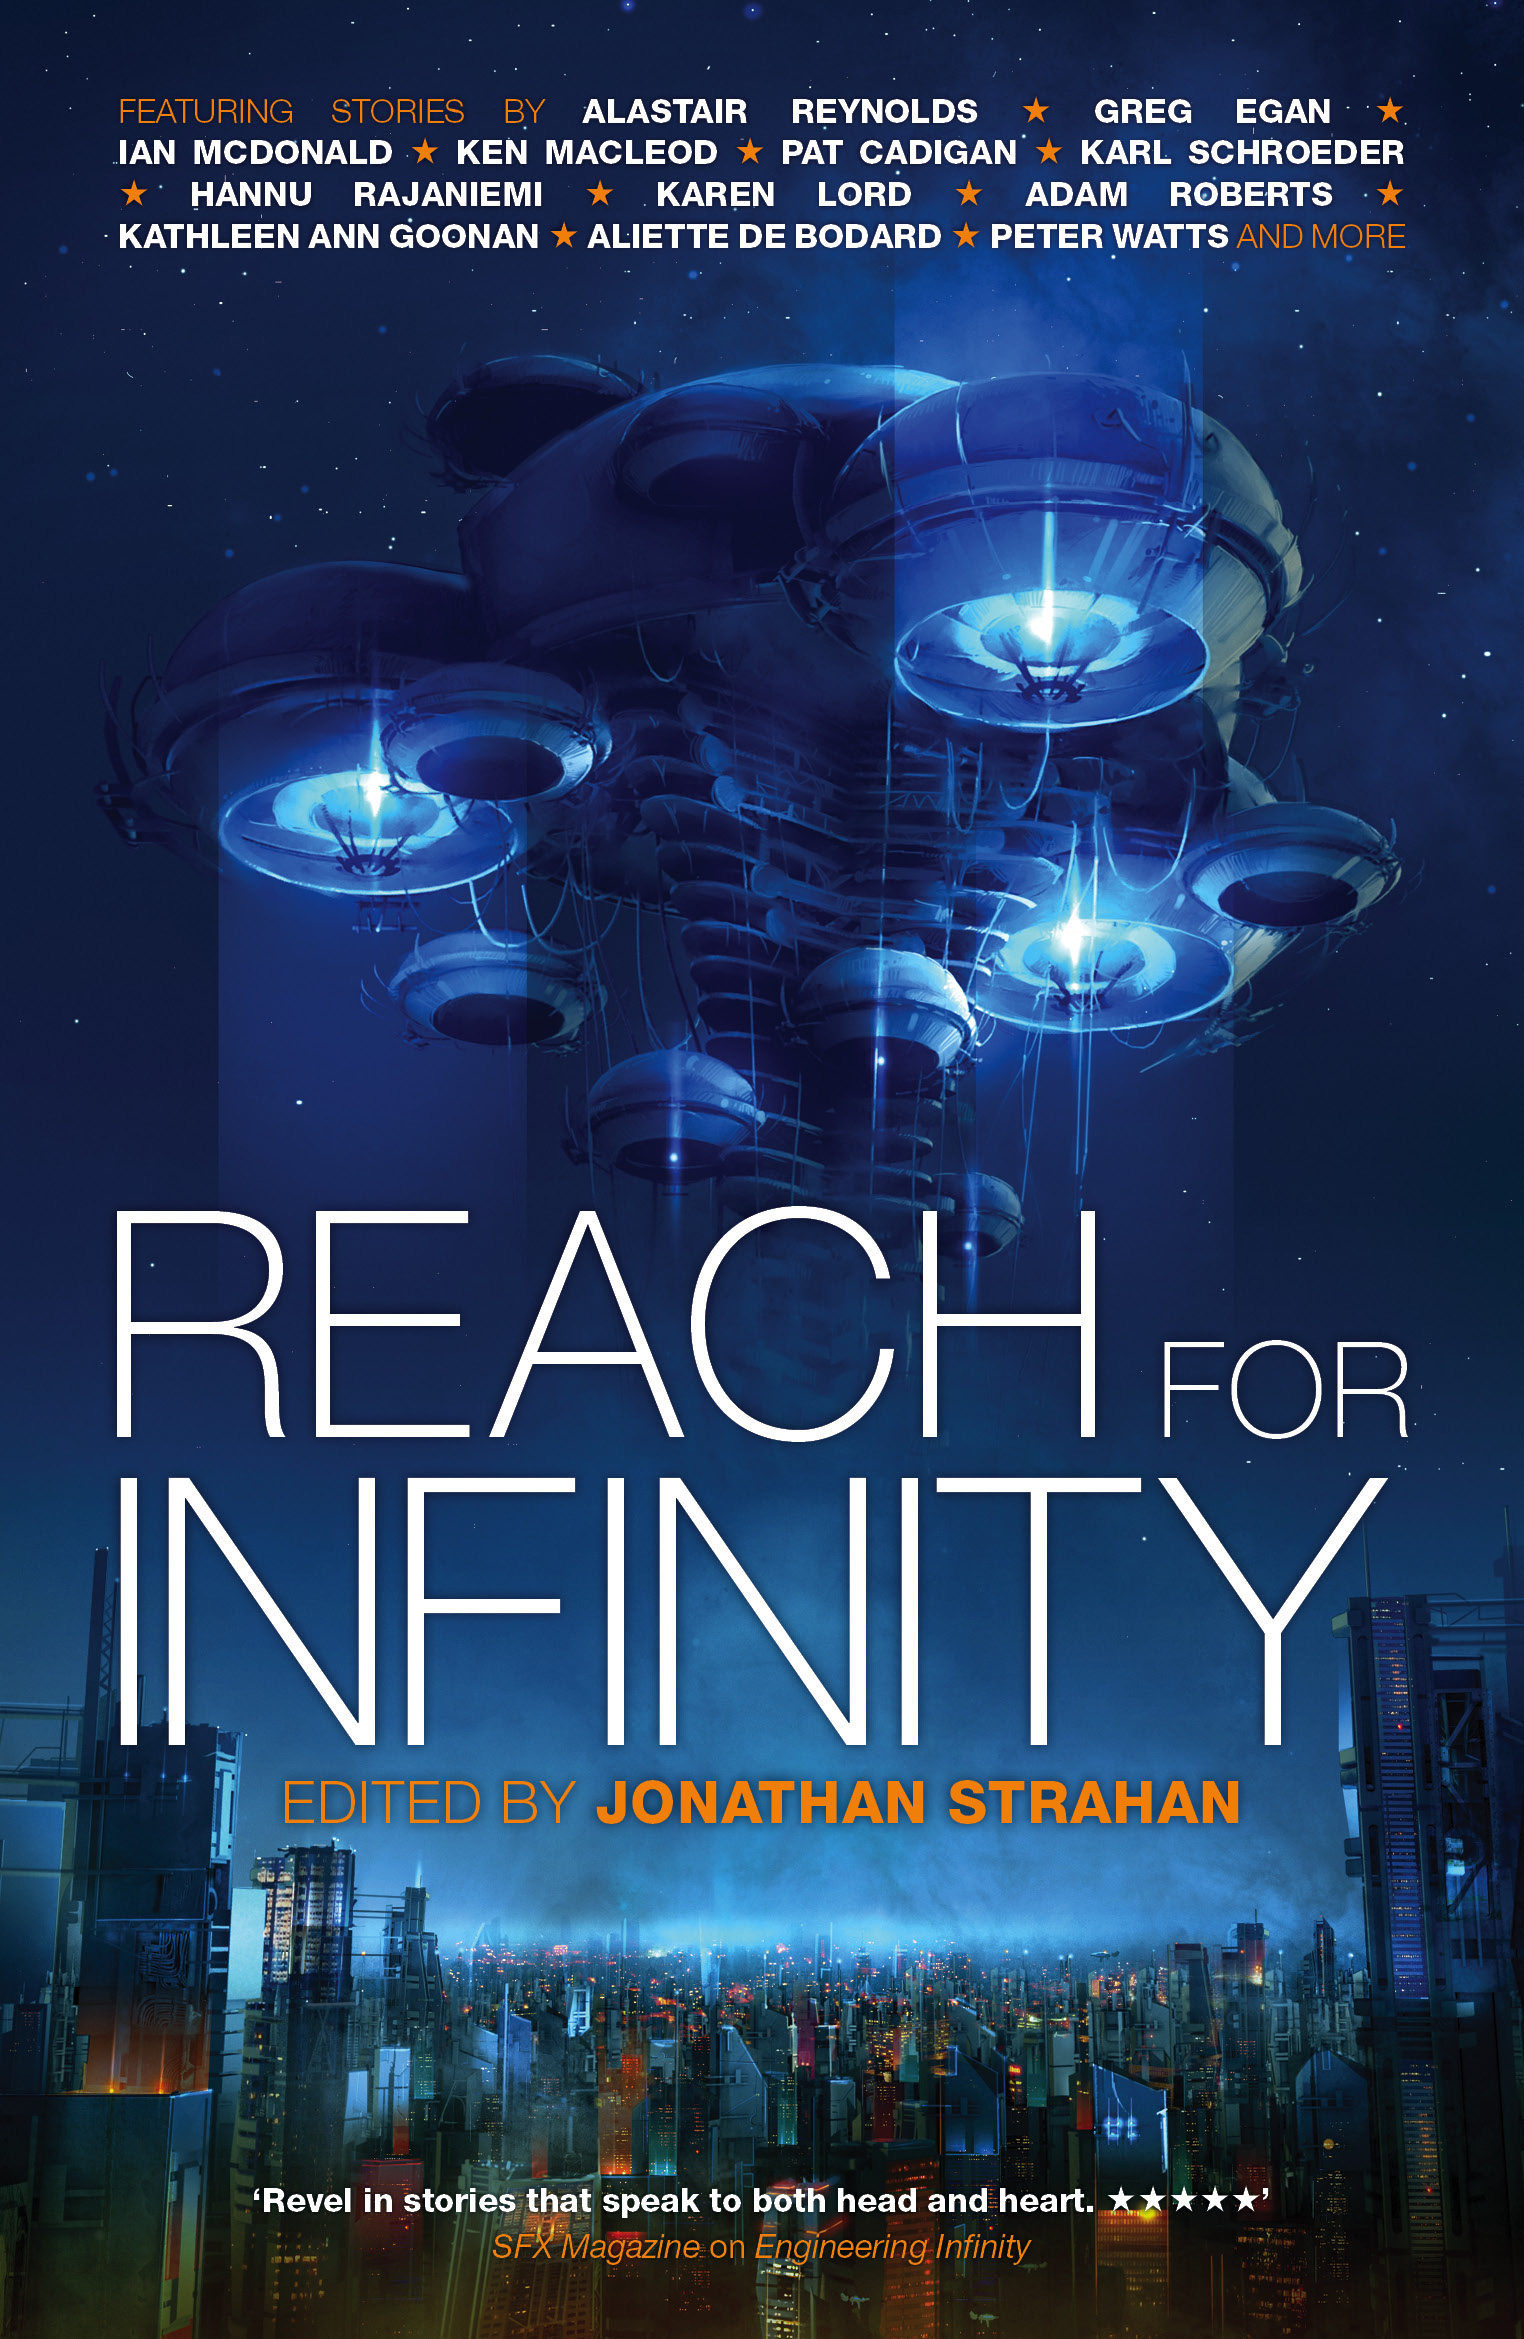 Reach for infinity 9781781082034 hr